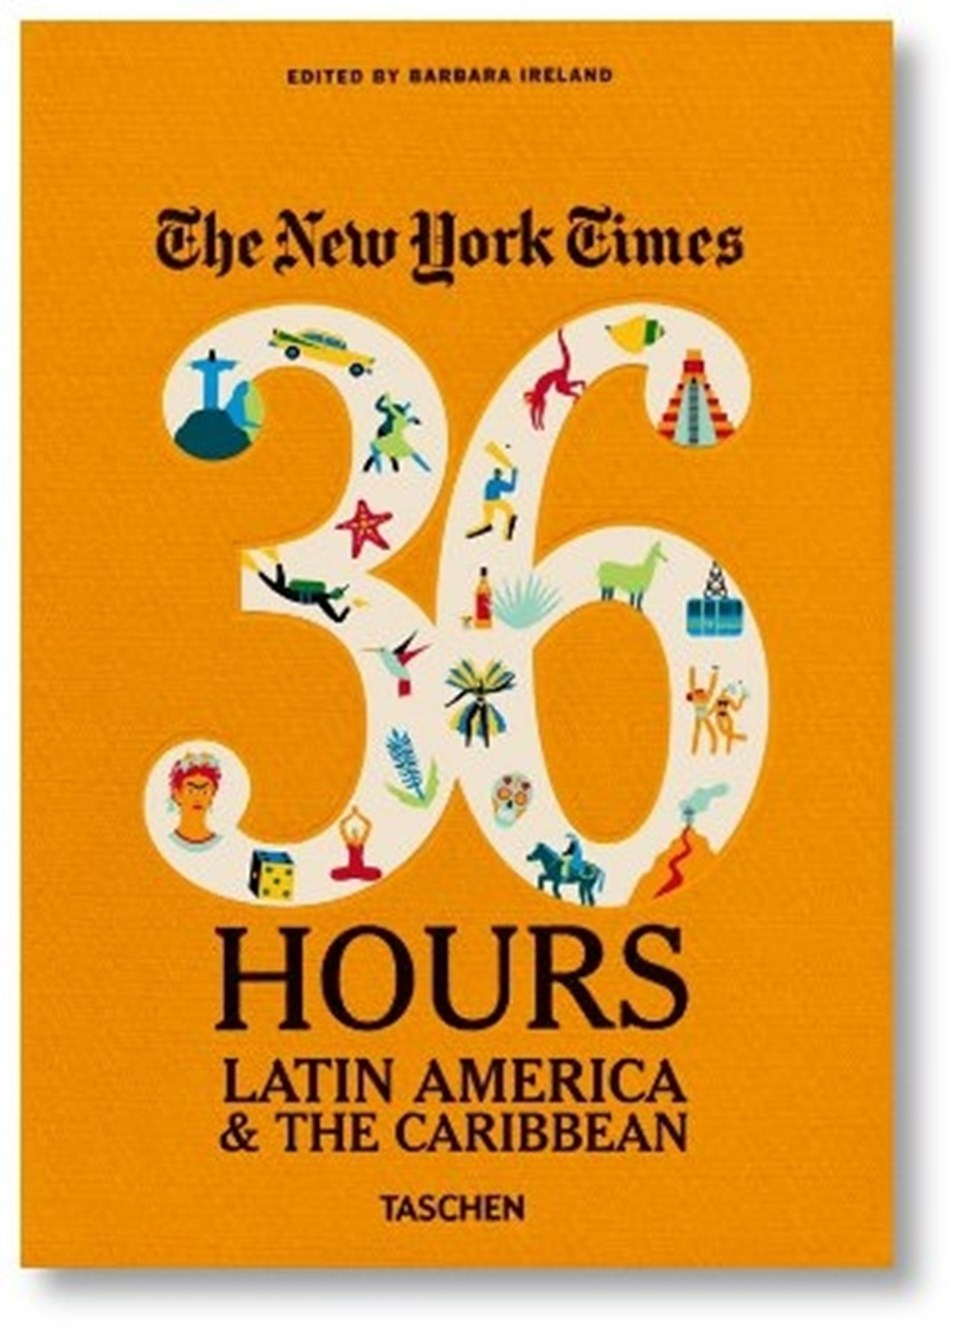 36 Hours: Latin America & The Caribbean